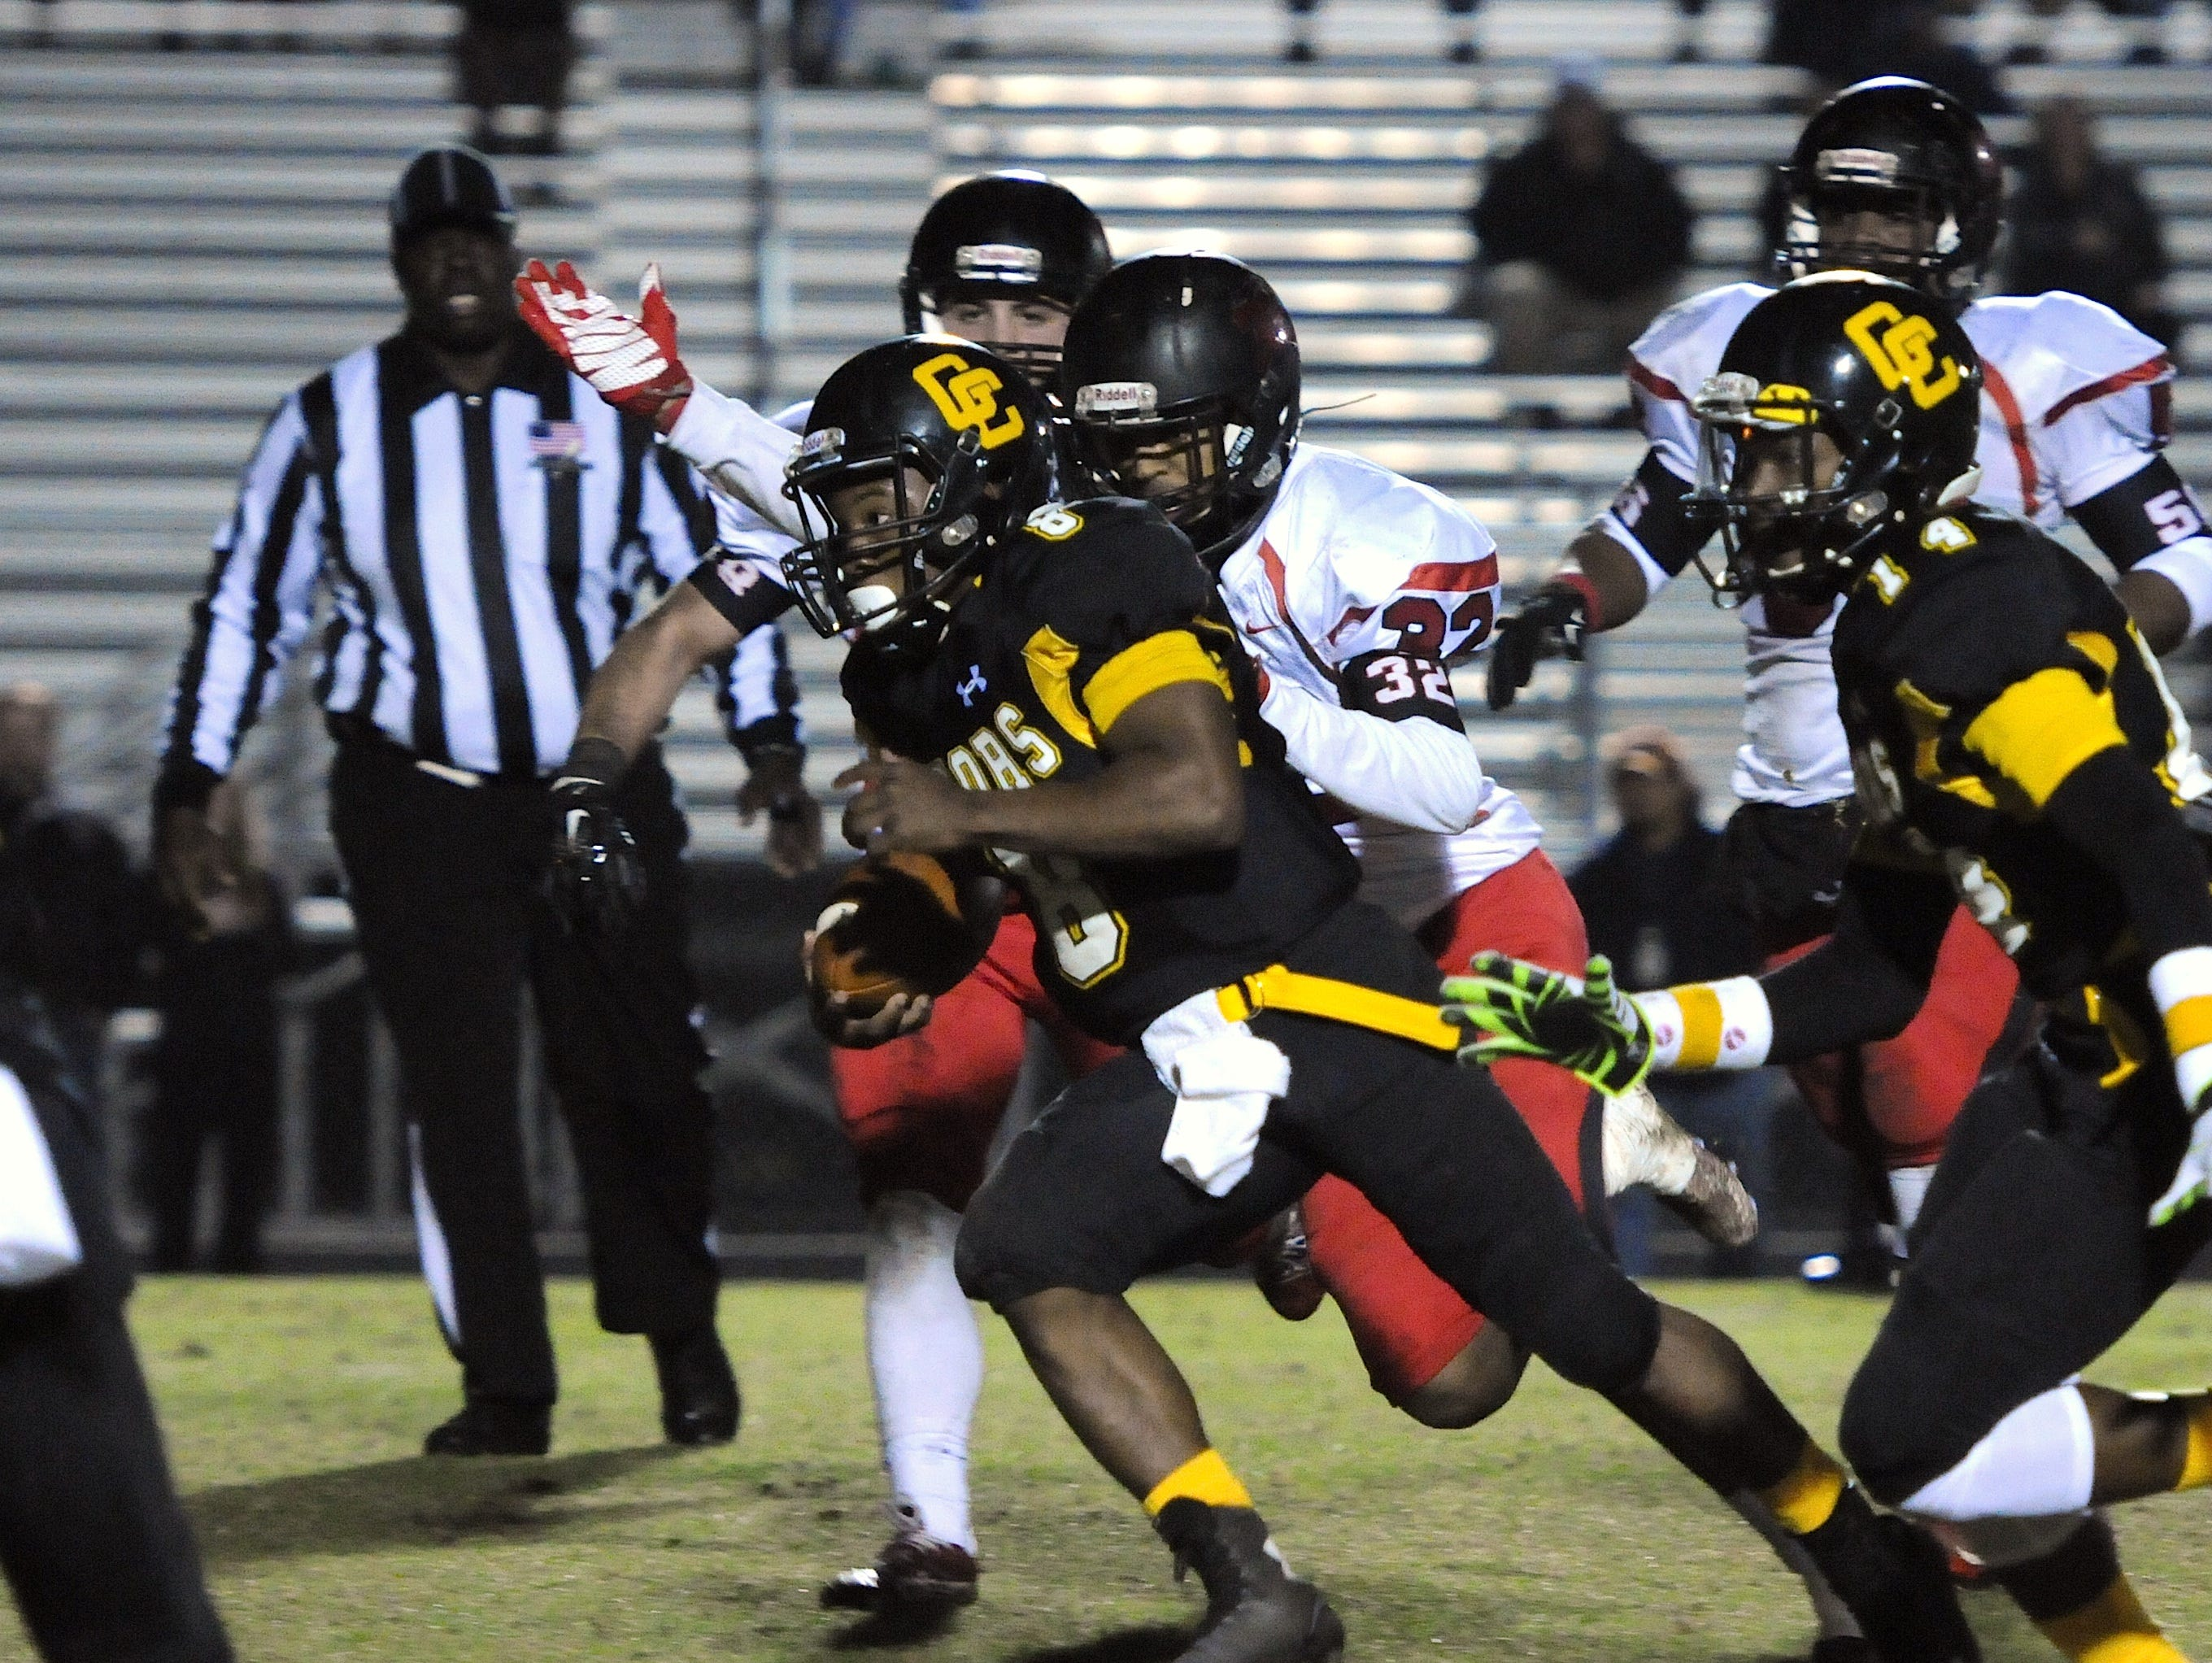 Goose Creek quarterback Dominique Jefferson (8) gains positive yardage up the middle before being tackled by Hillcrest's Parker Nichols (32).